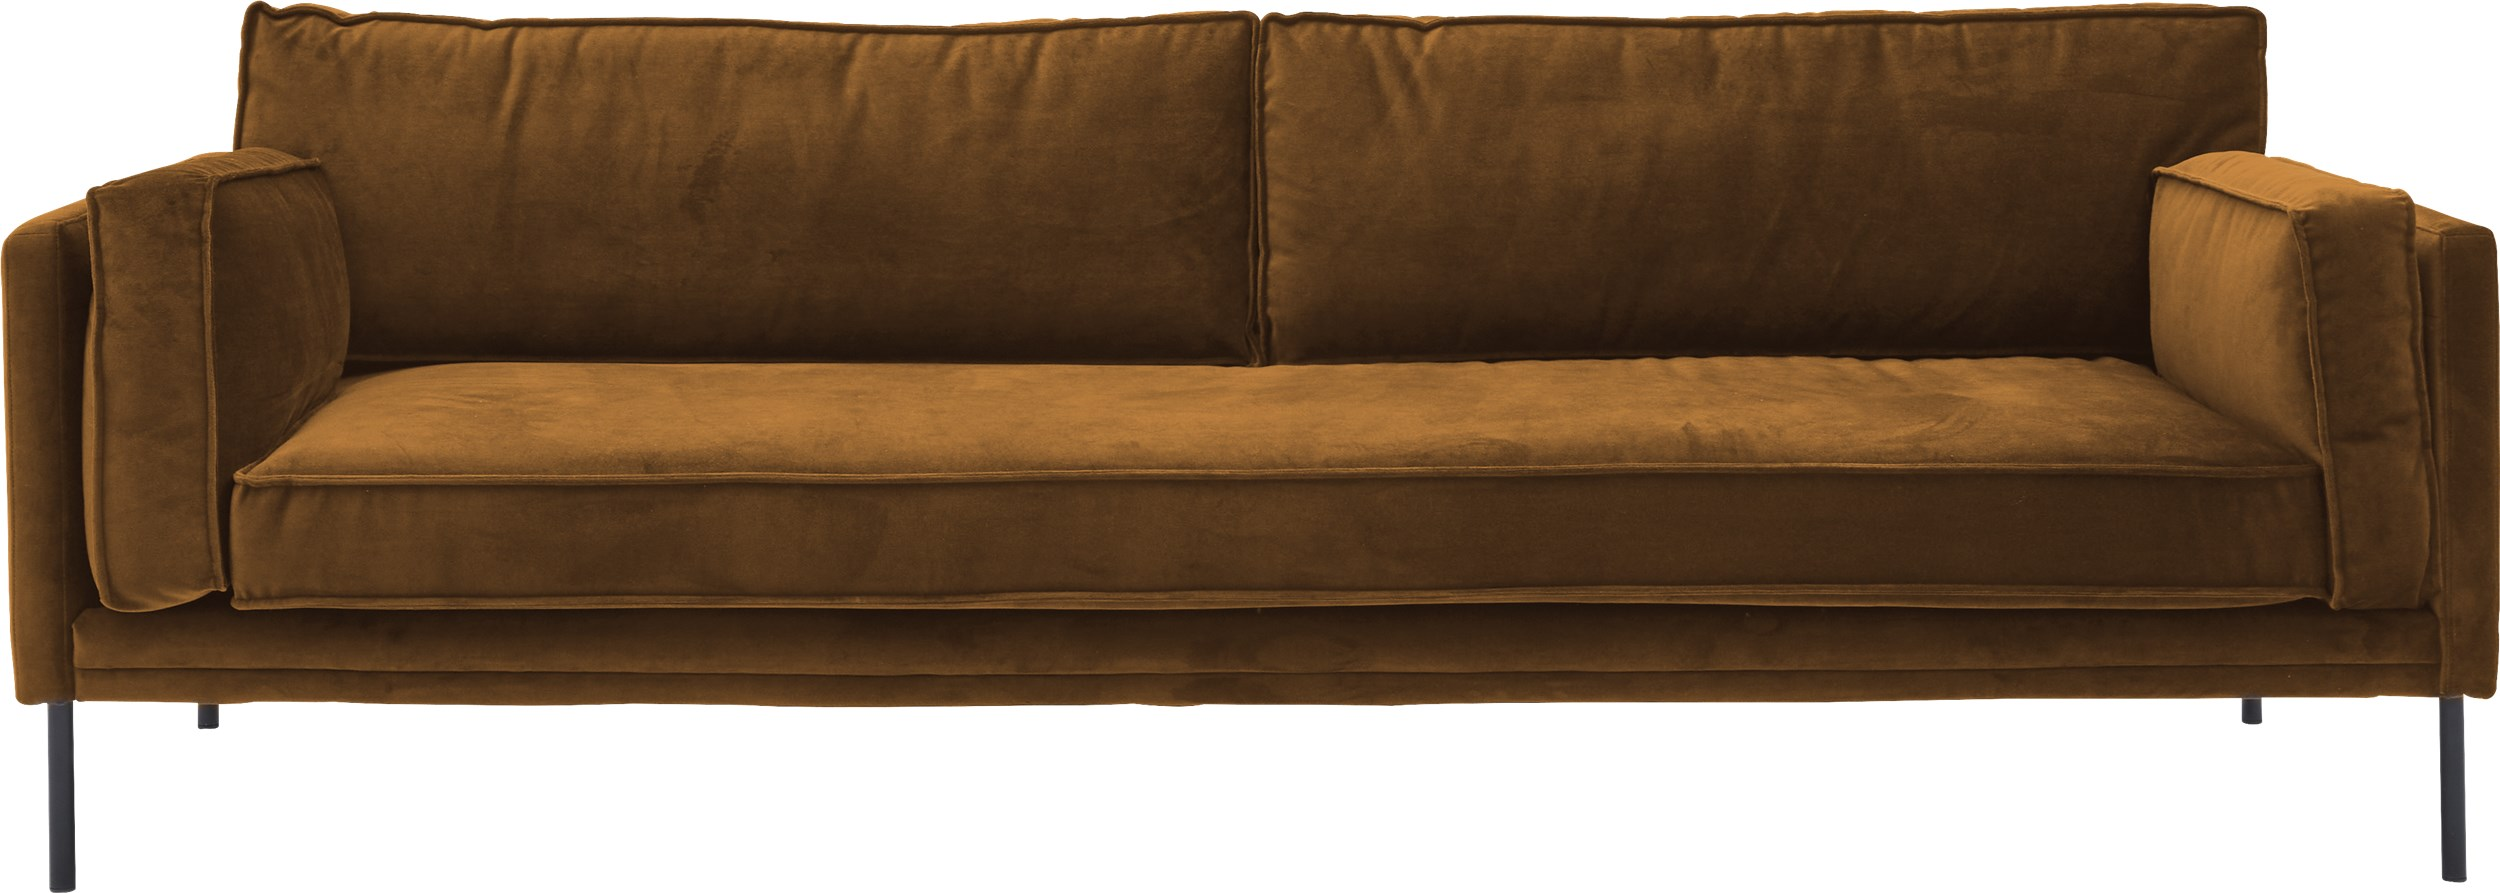 Keep 3 pers Sofa - Toro 6826 Mustard stof og ben i sort metal